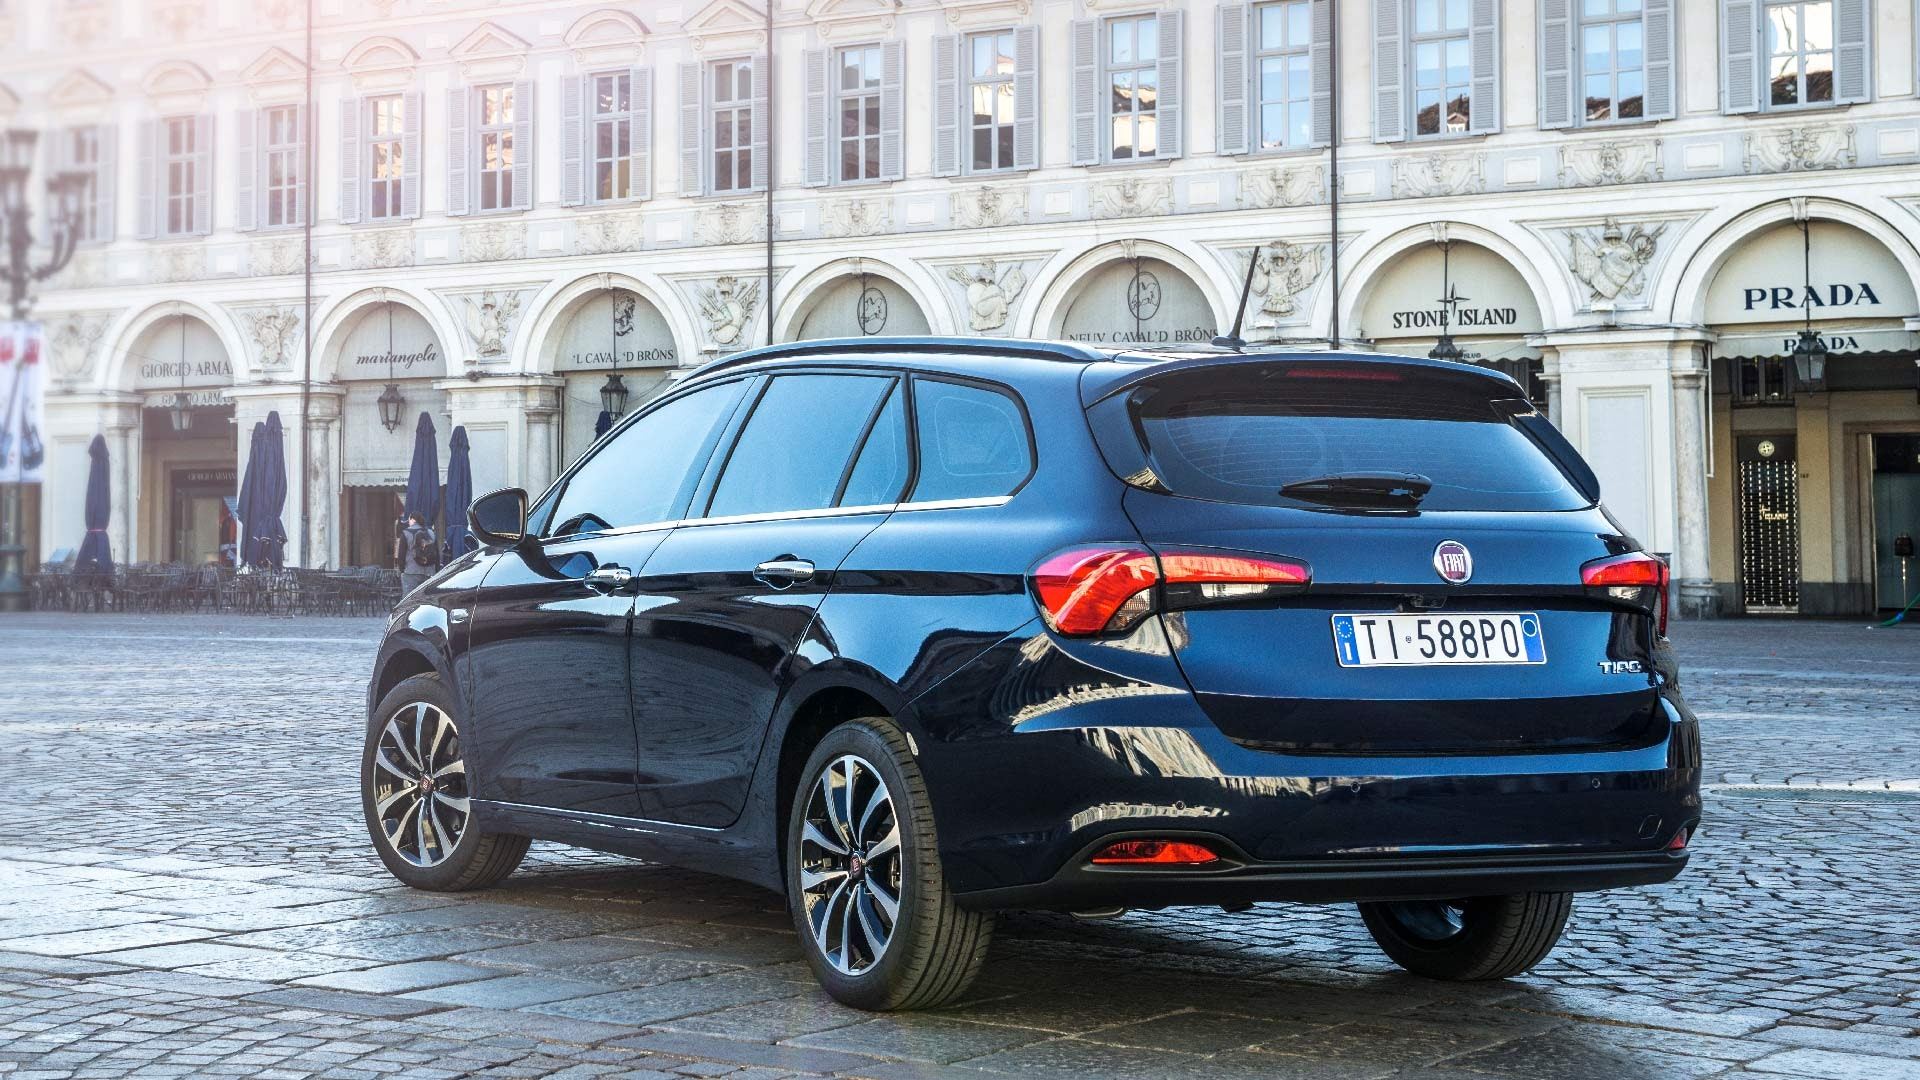 Fiat Tipo SW bagende